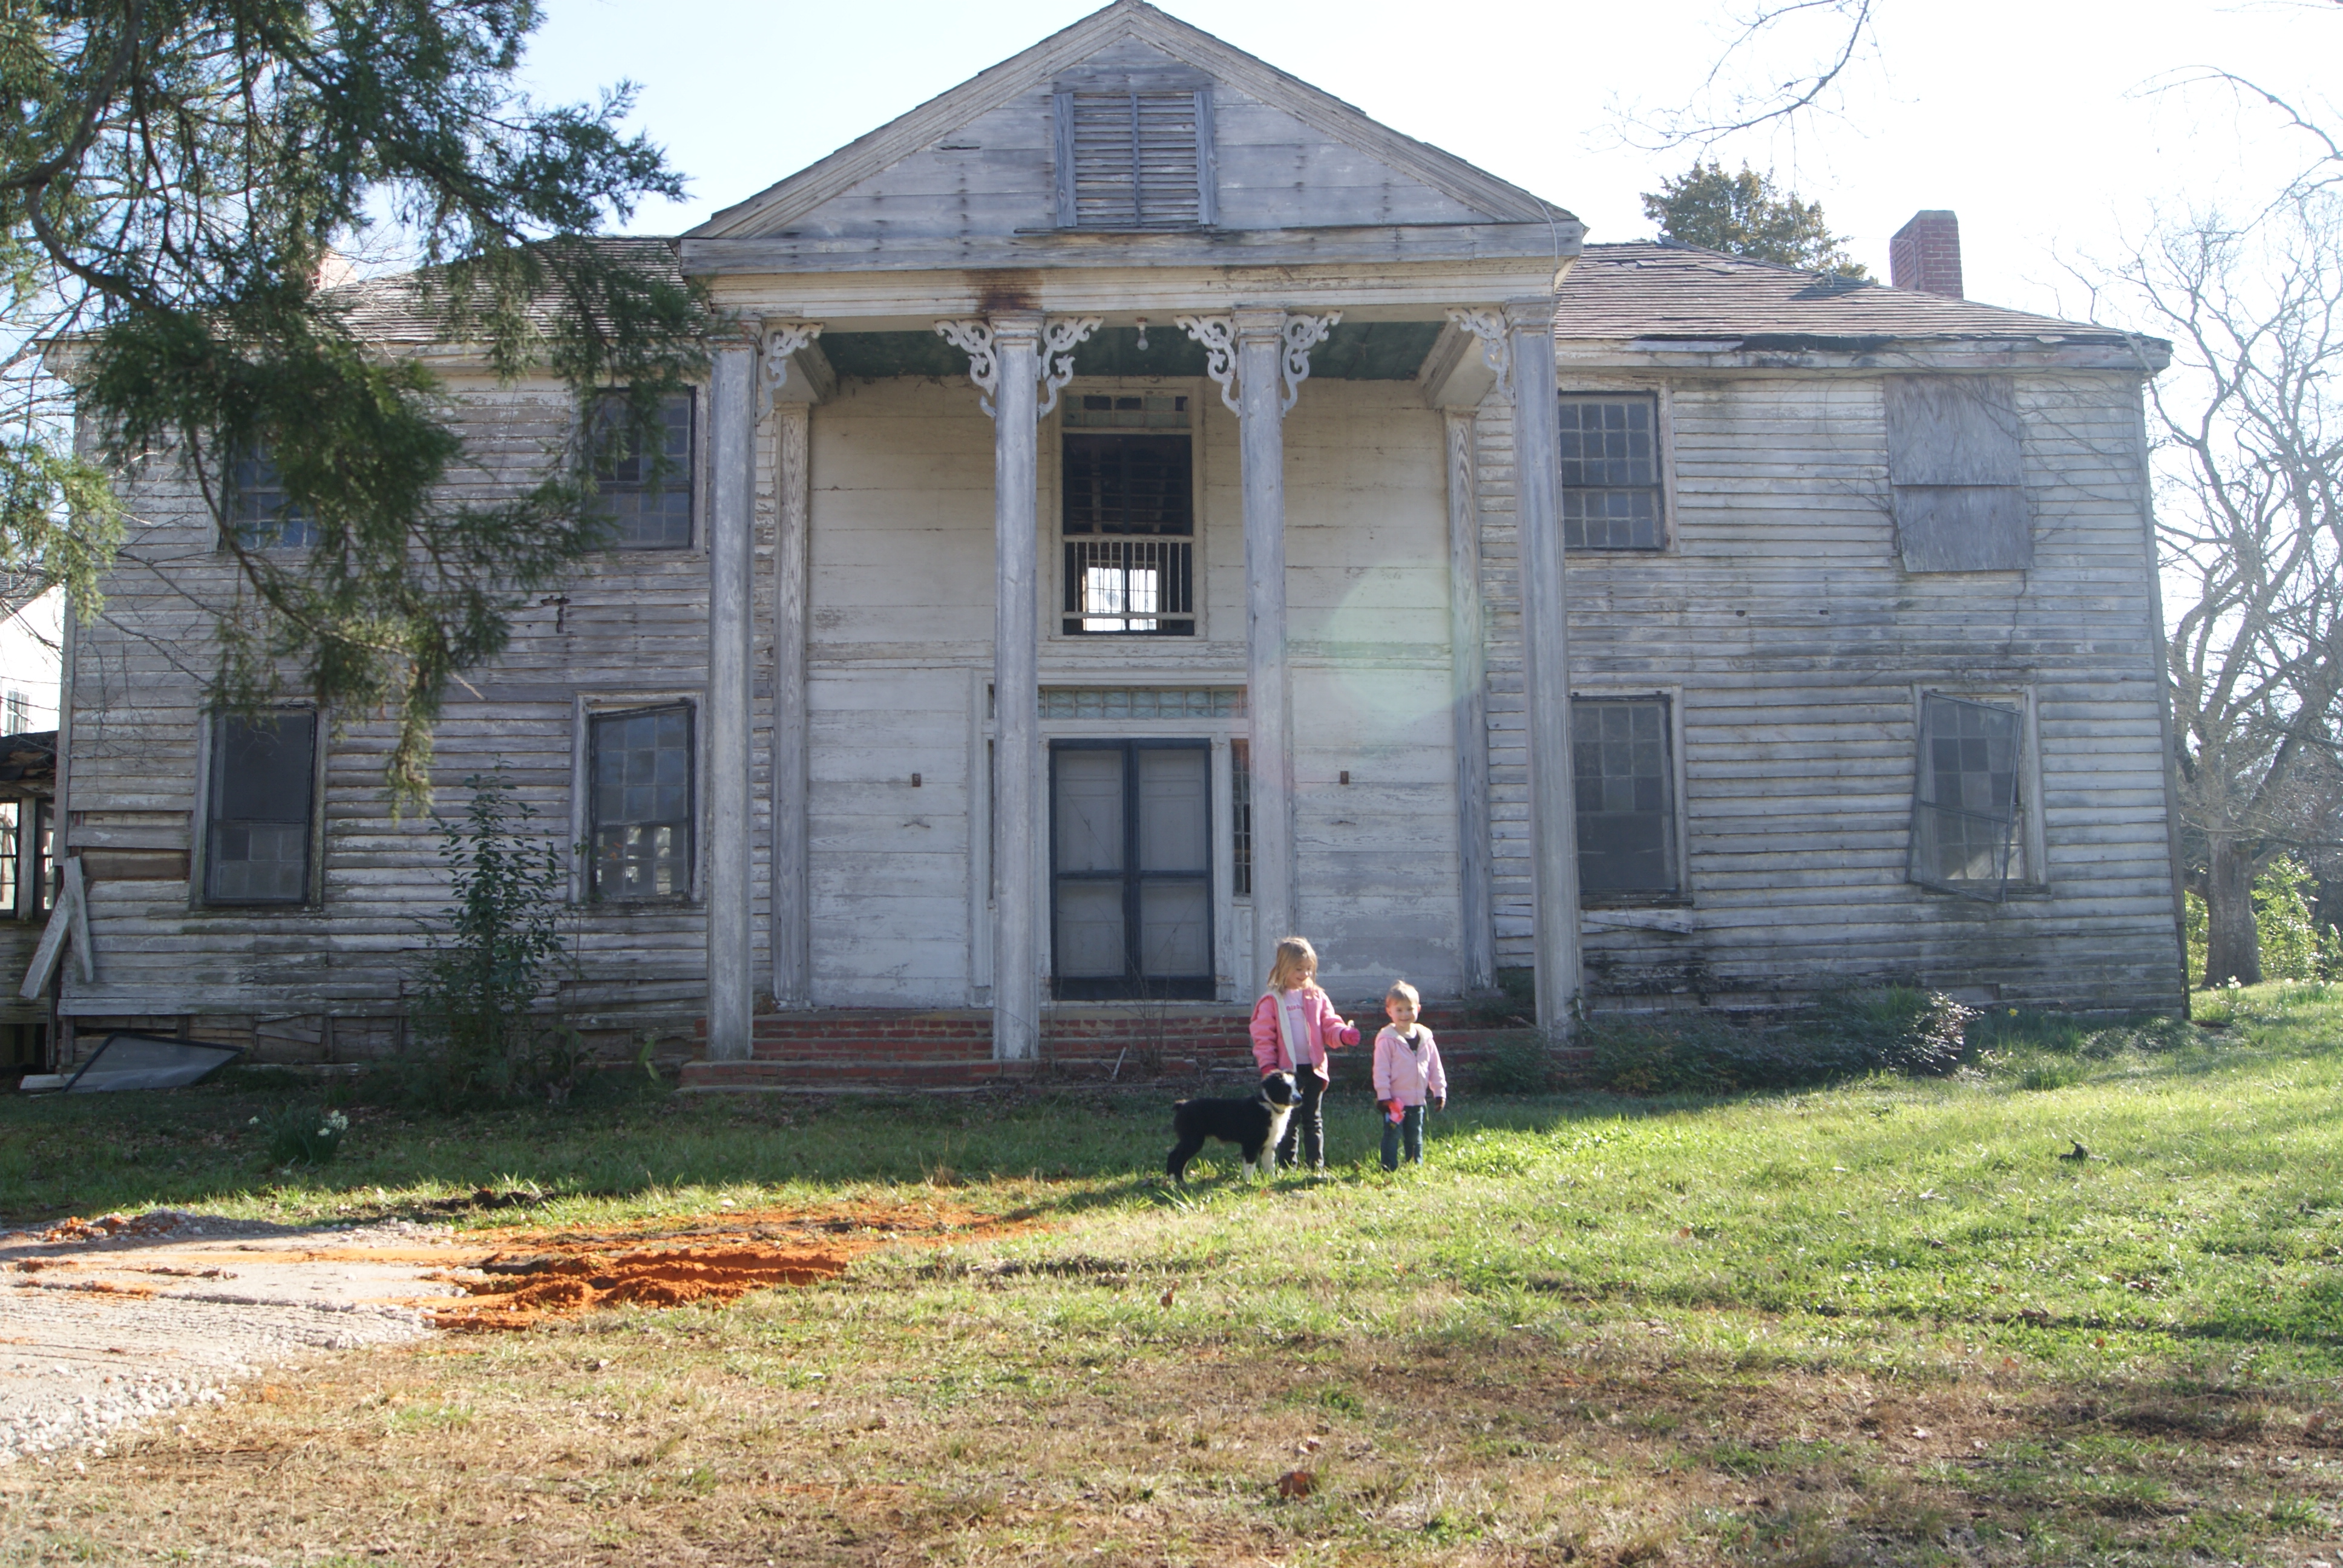 """ENDANGERED HOUSE PRESERVED.                                       Who: Amanda H.                                       Where: Gallion, Alabama.                                                                              Before: """"Bermuda Hill had been placed on the 'endangered' list and 'places of peril' by the Alabama Historic Commission. The house had been empty for nearly 25 years. Most people thought we were nuts to take on the project."""""""